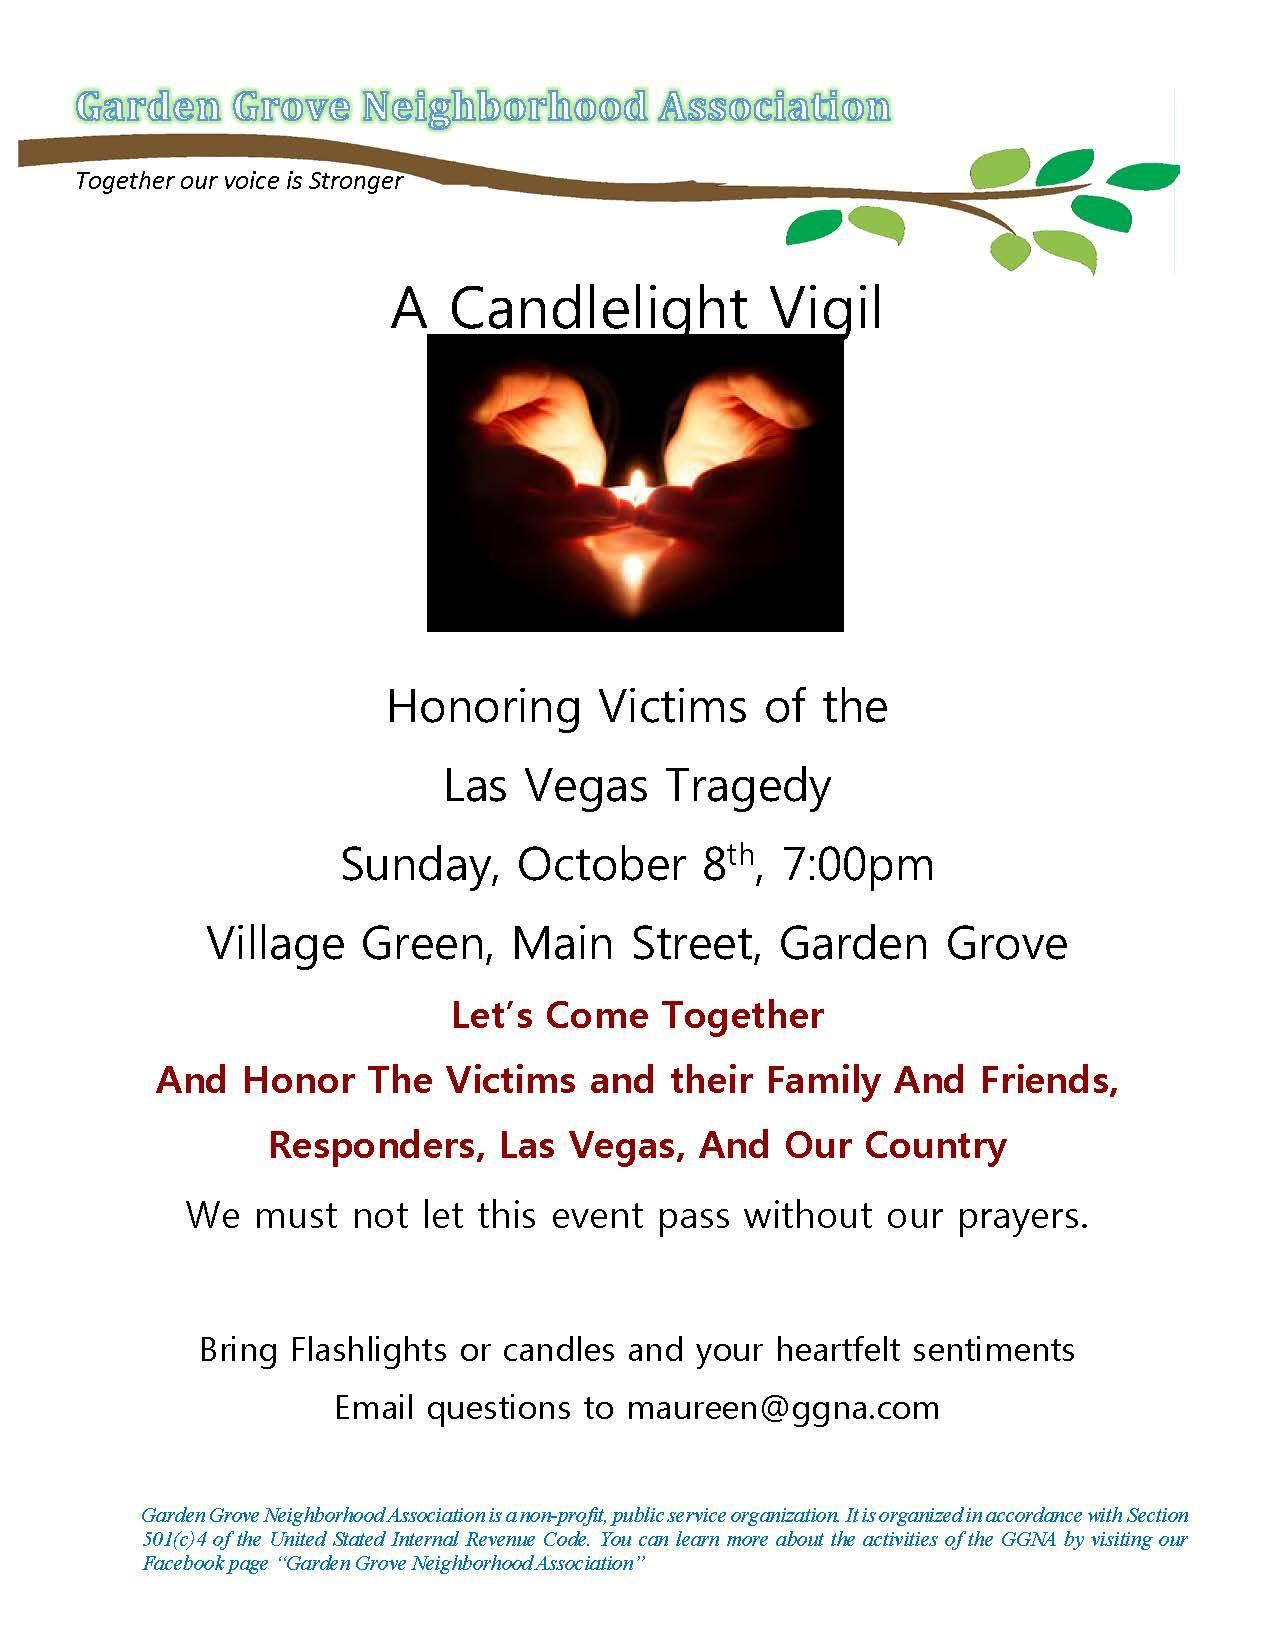 Candlelight vigil flyer